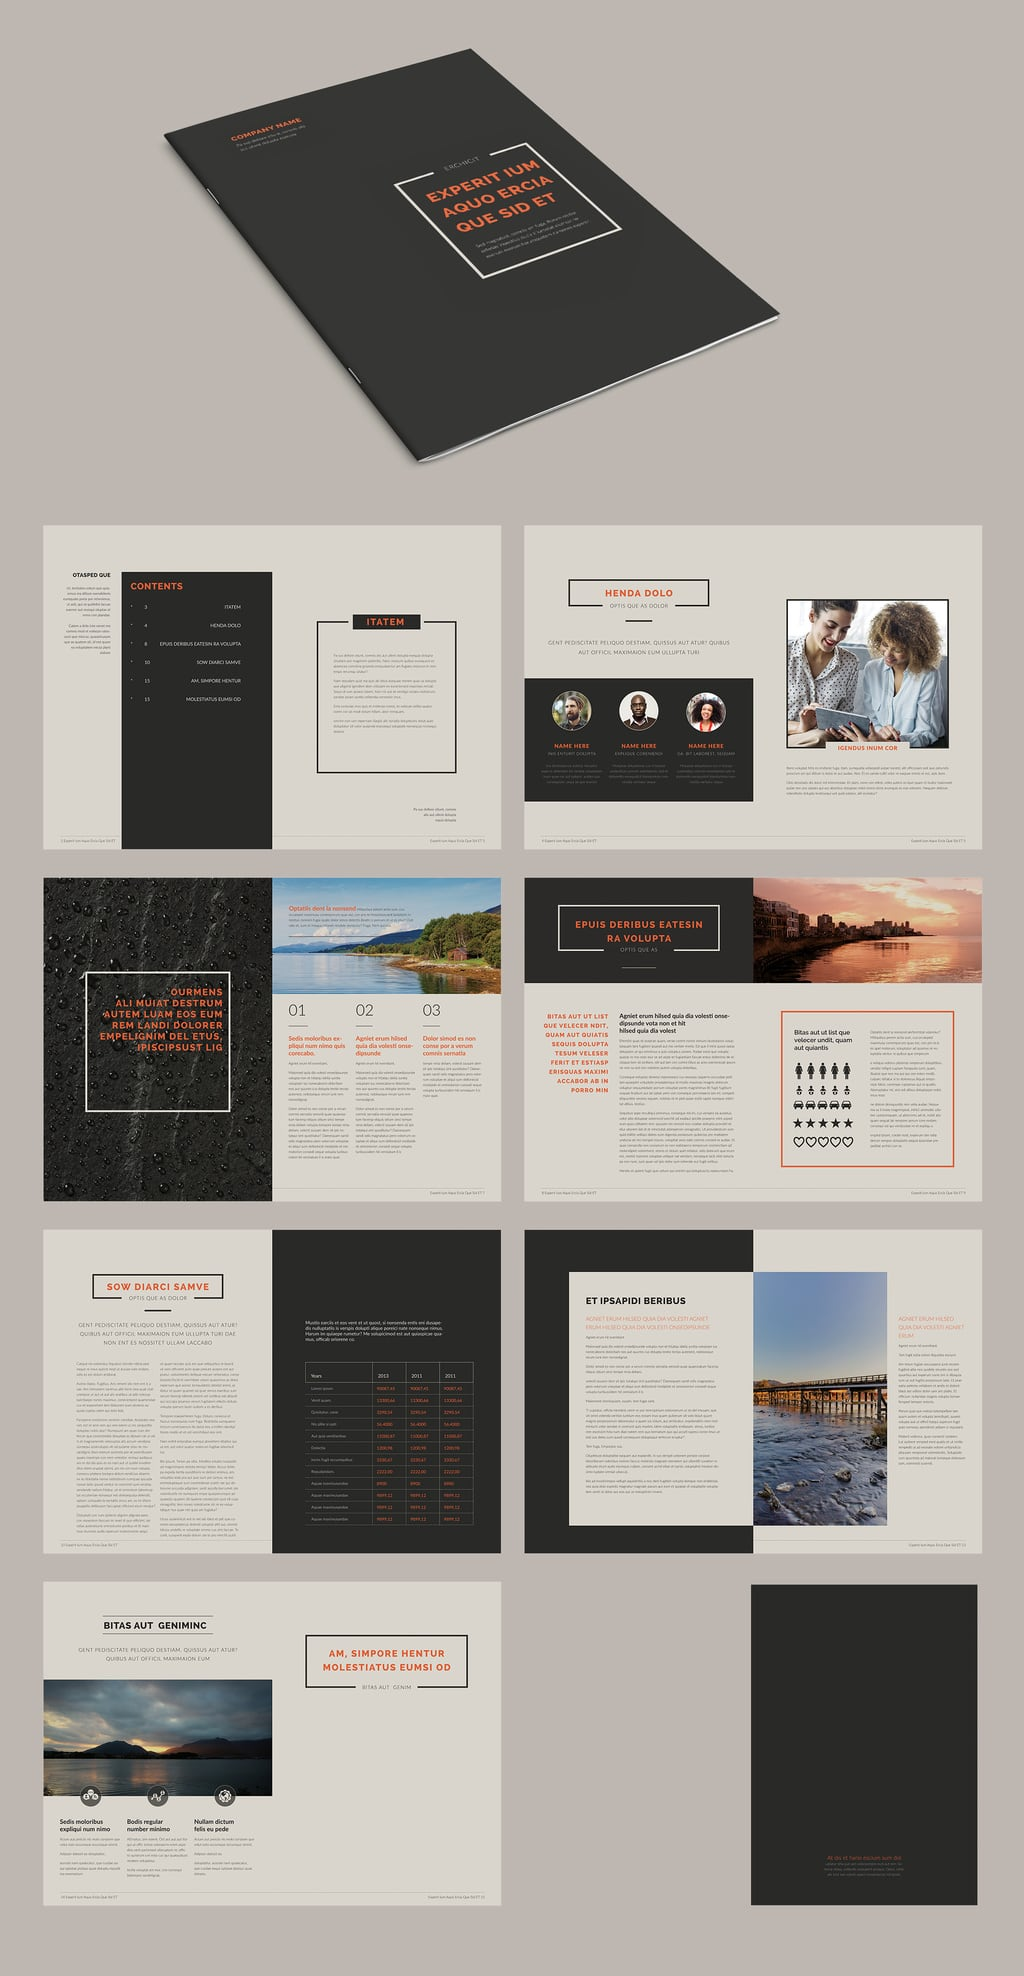 InDesign Brochure Templates Free: The Minimal Brochure Layout